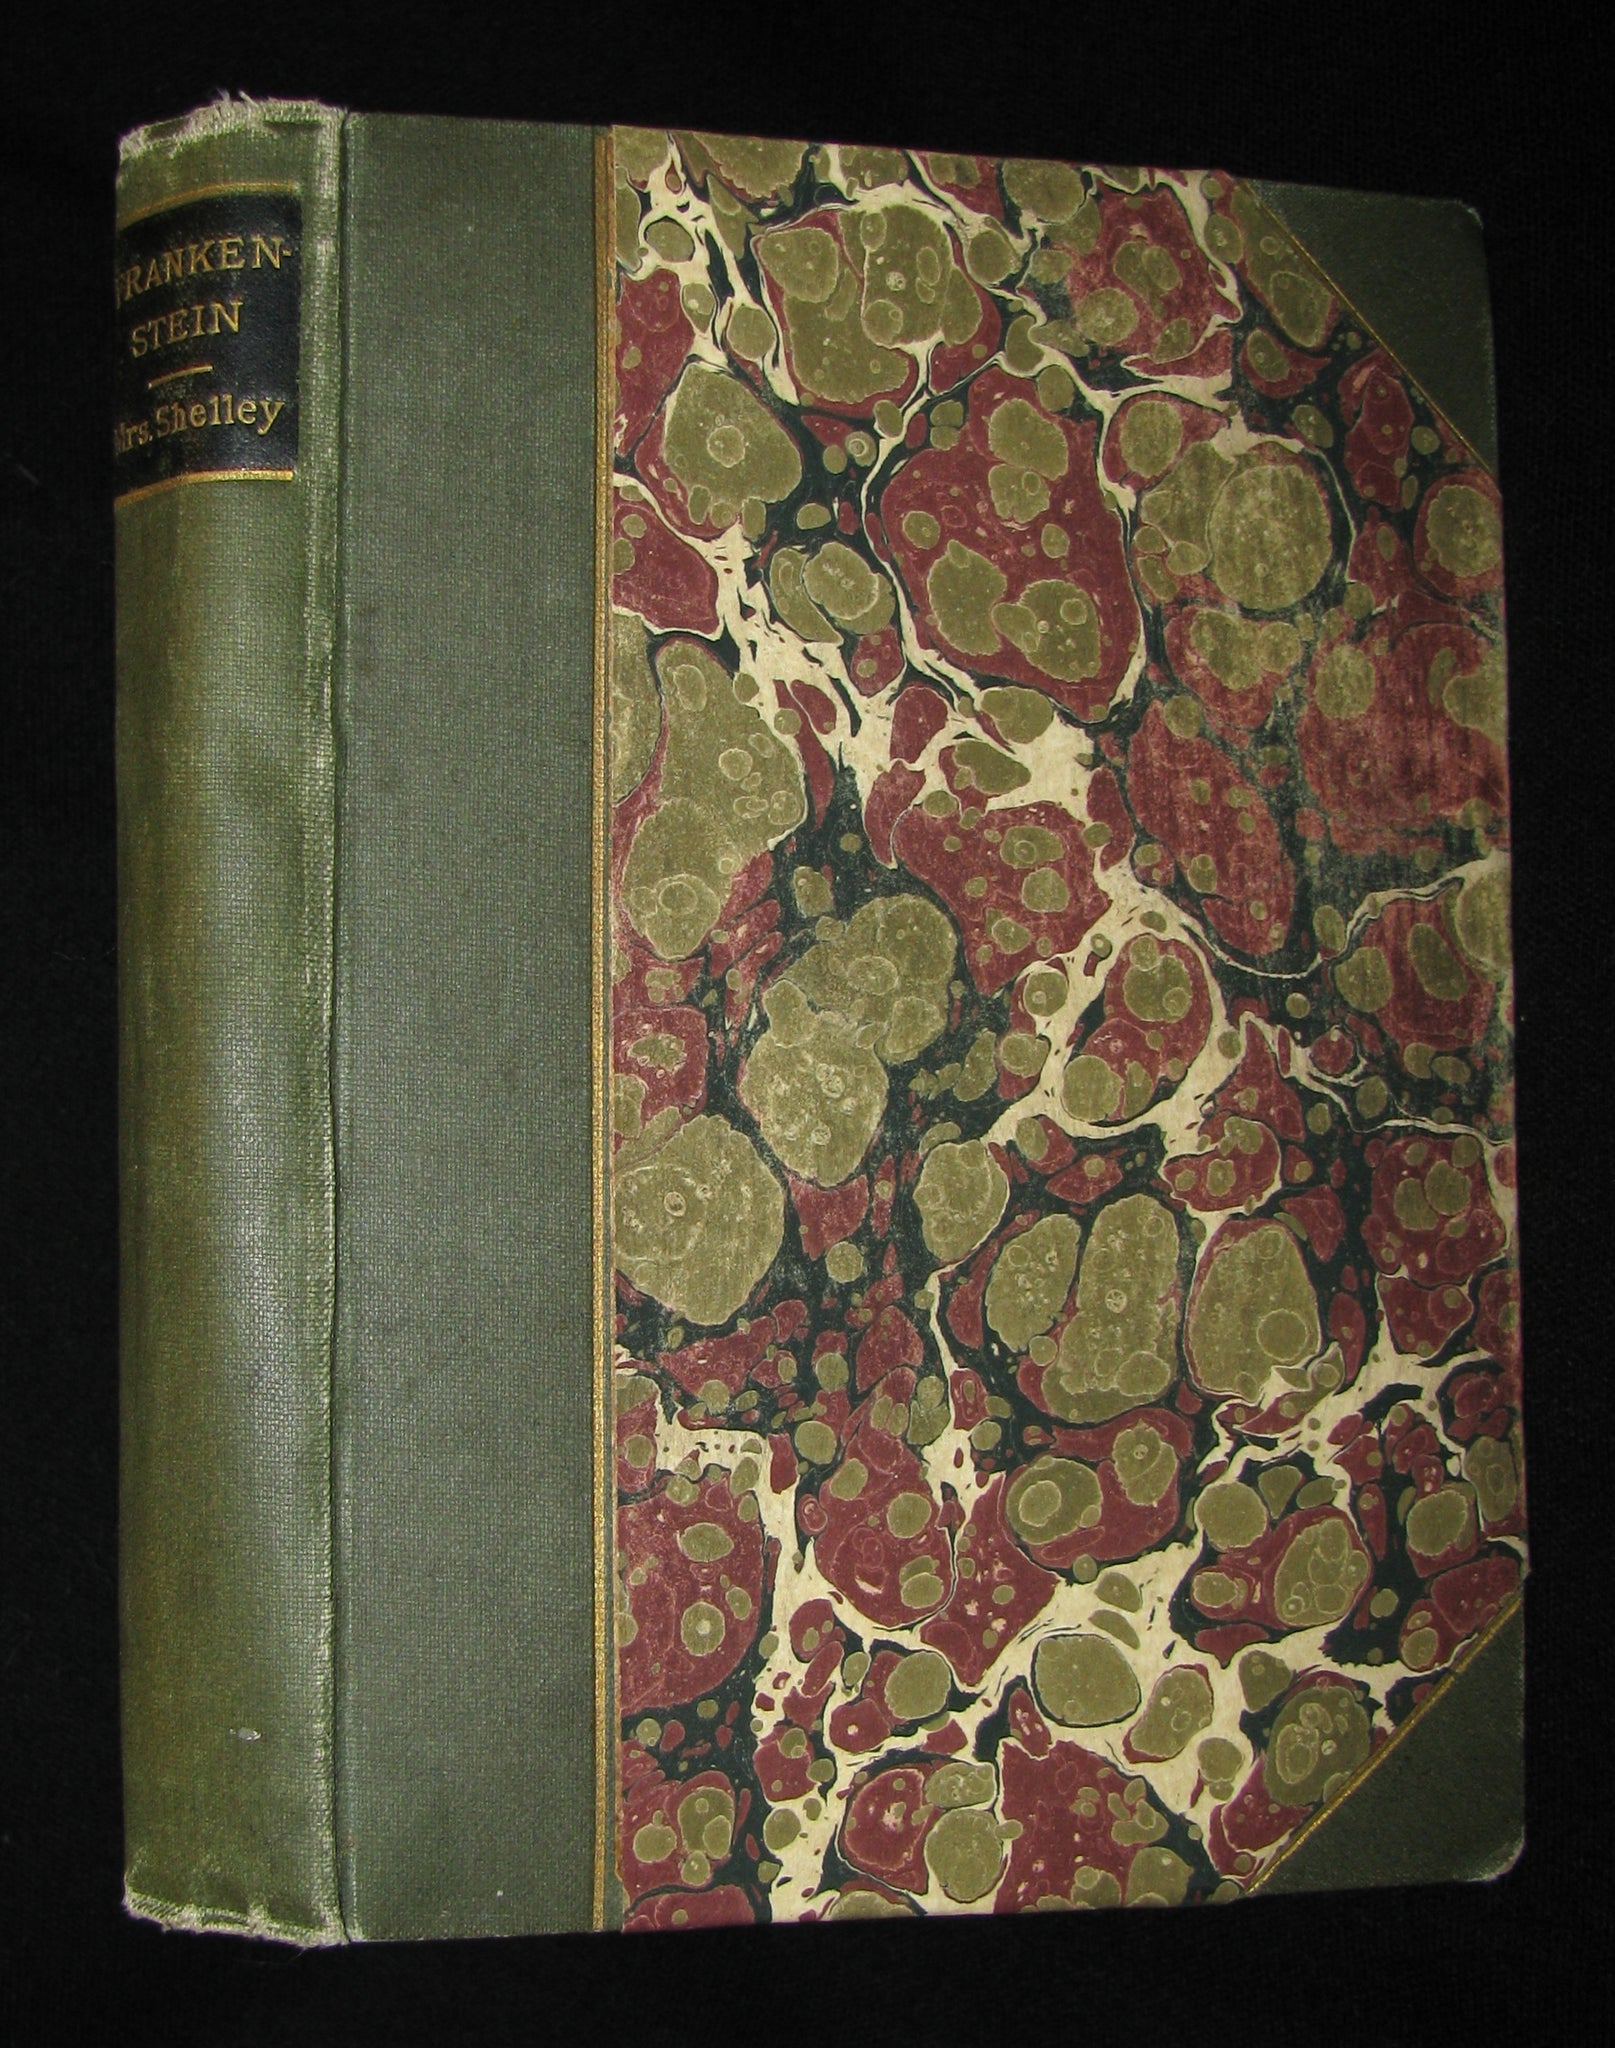 1888 Rare Gothic Book - FRANKENSTEIN  or, The Modern Prometheus by Mary Shelley